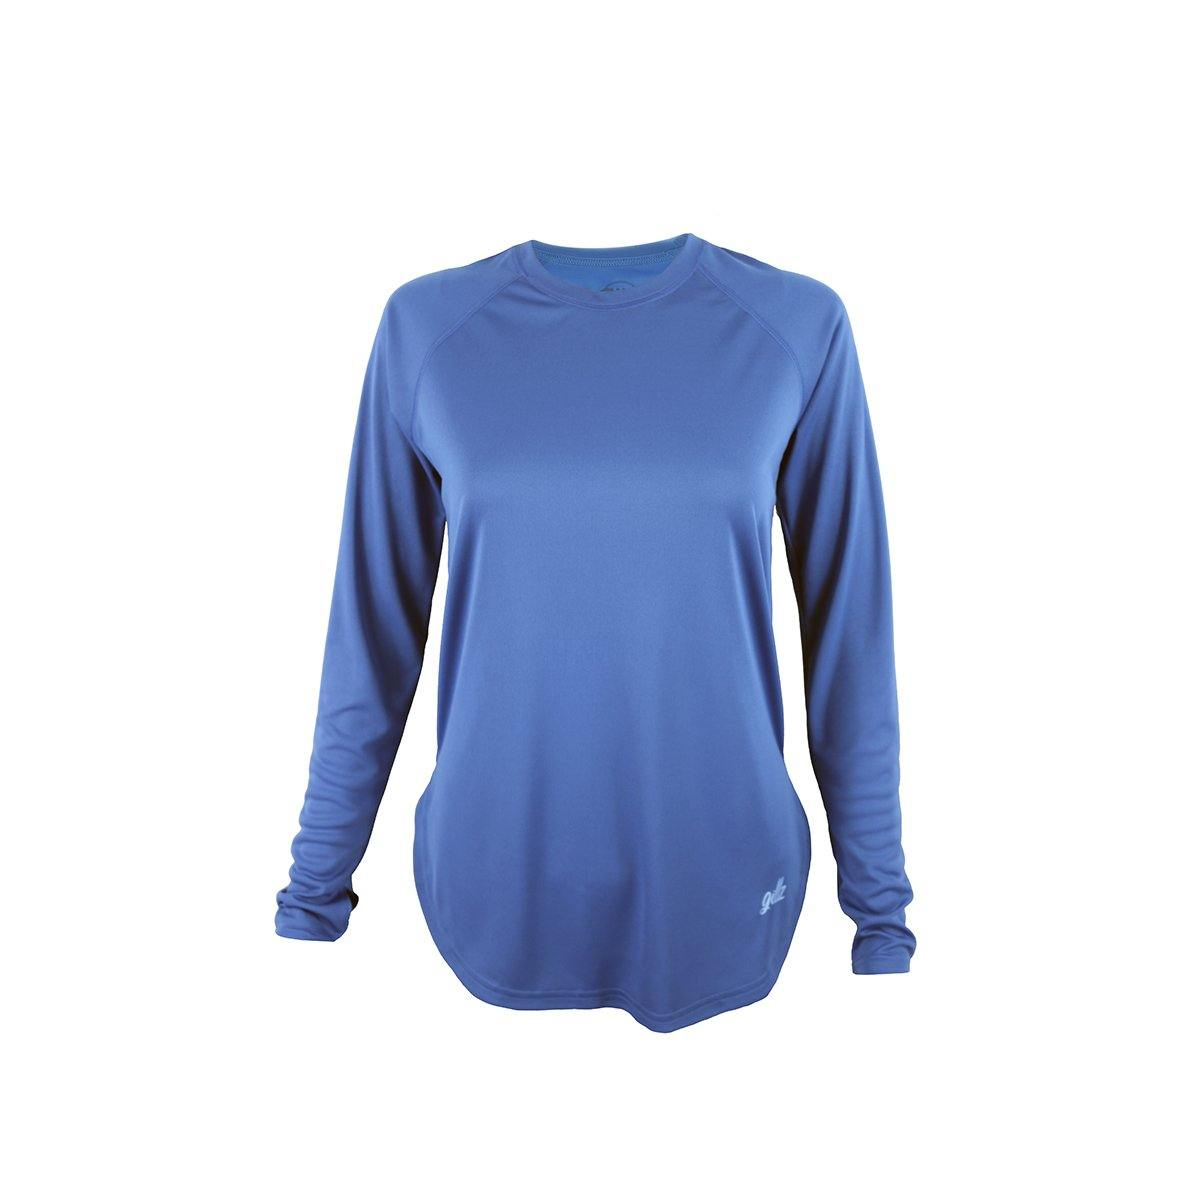 Gillz Women's Long Sleeve Seabreeze V2